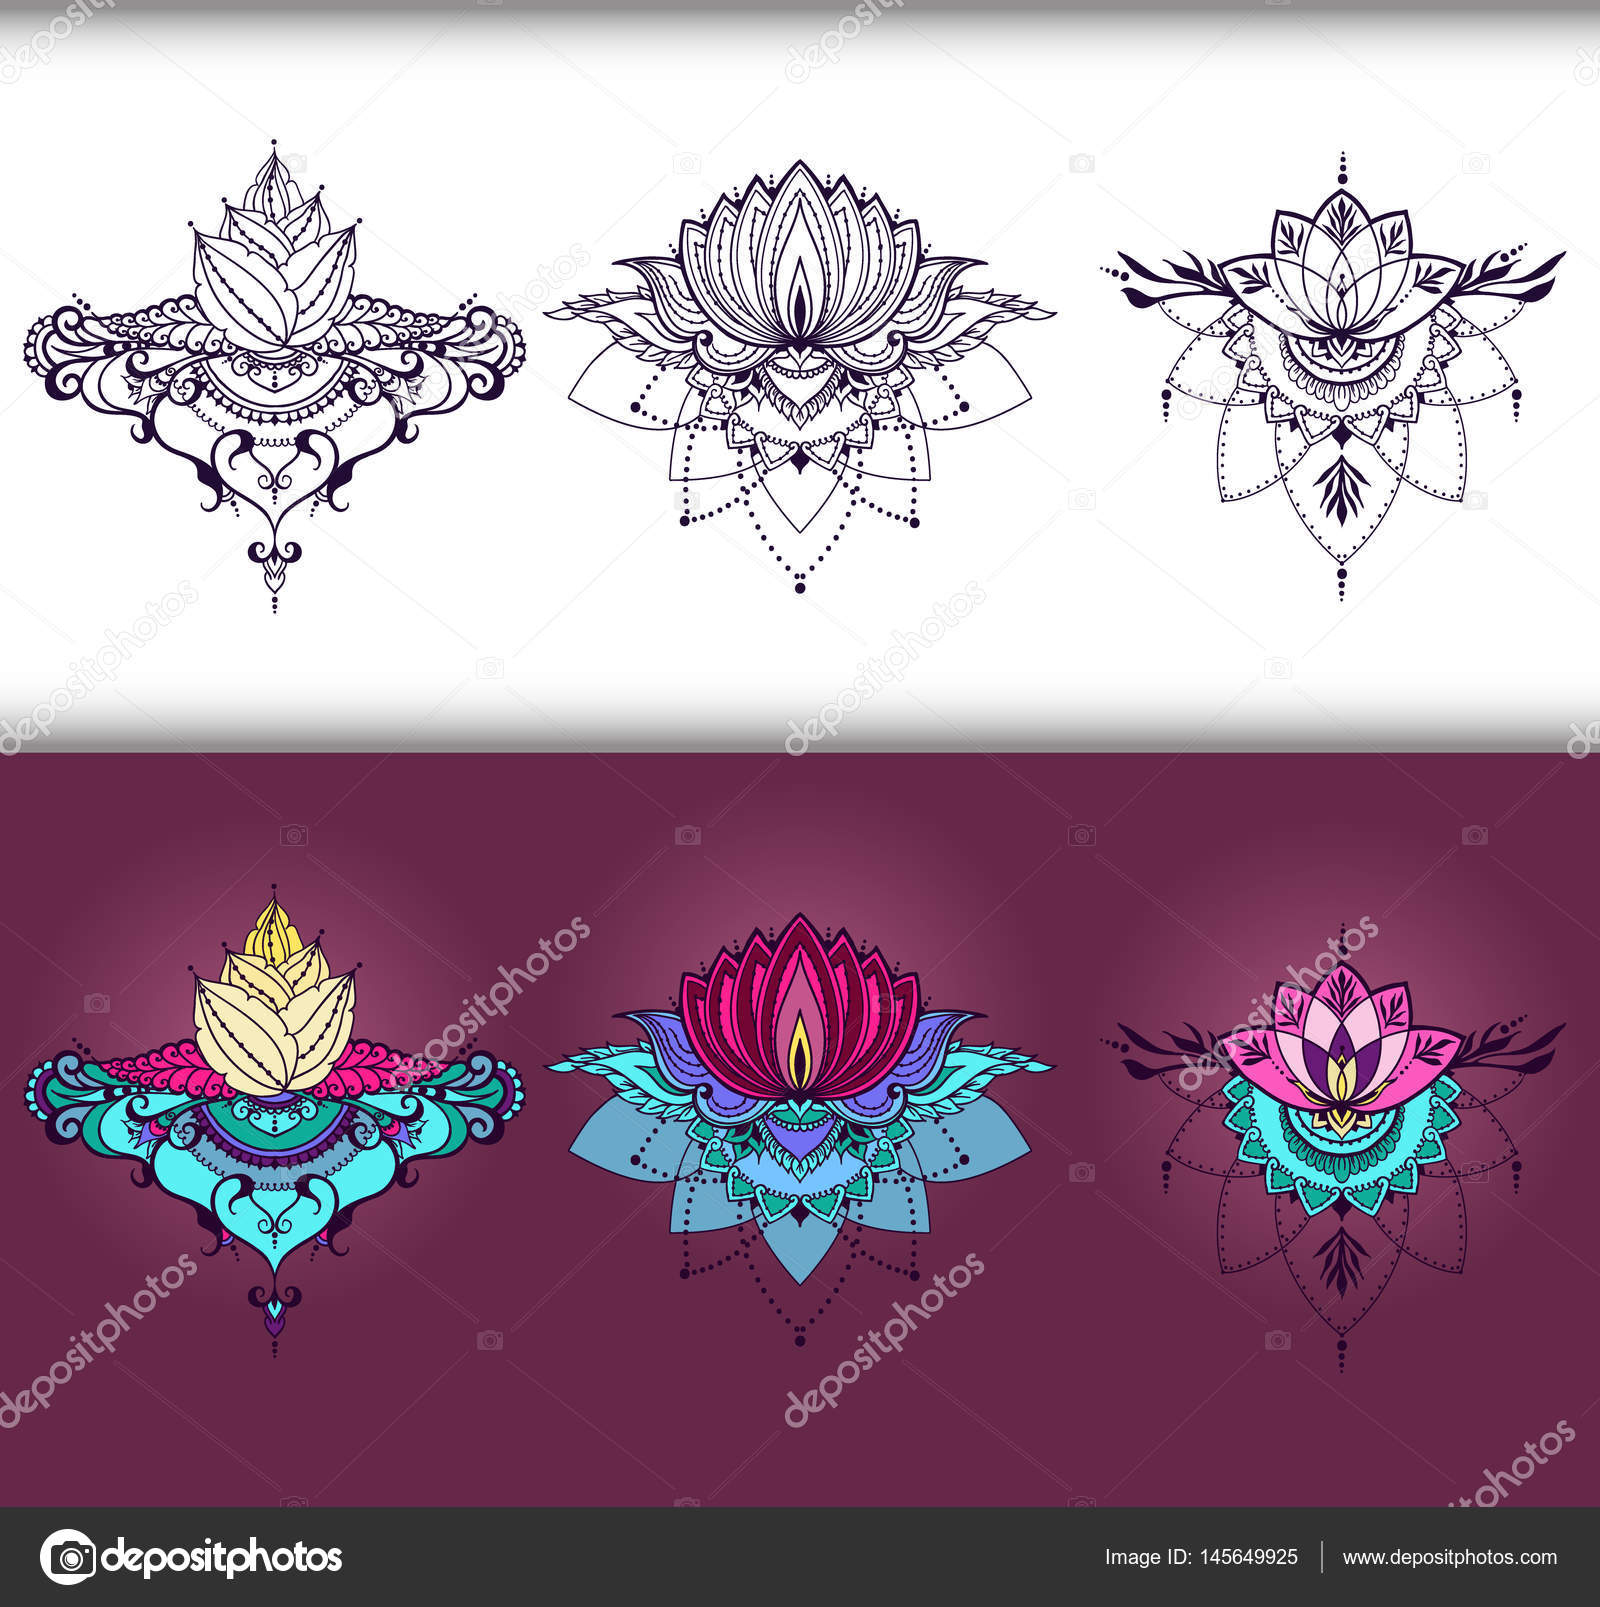 Freehand drawing of lotus flowers in east style stock vector freehand drawing of lotus flowers in east style stock vector izmirmasajfo